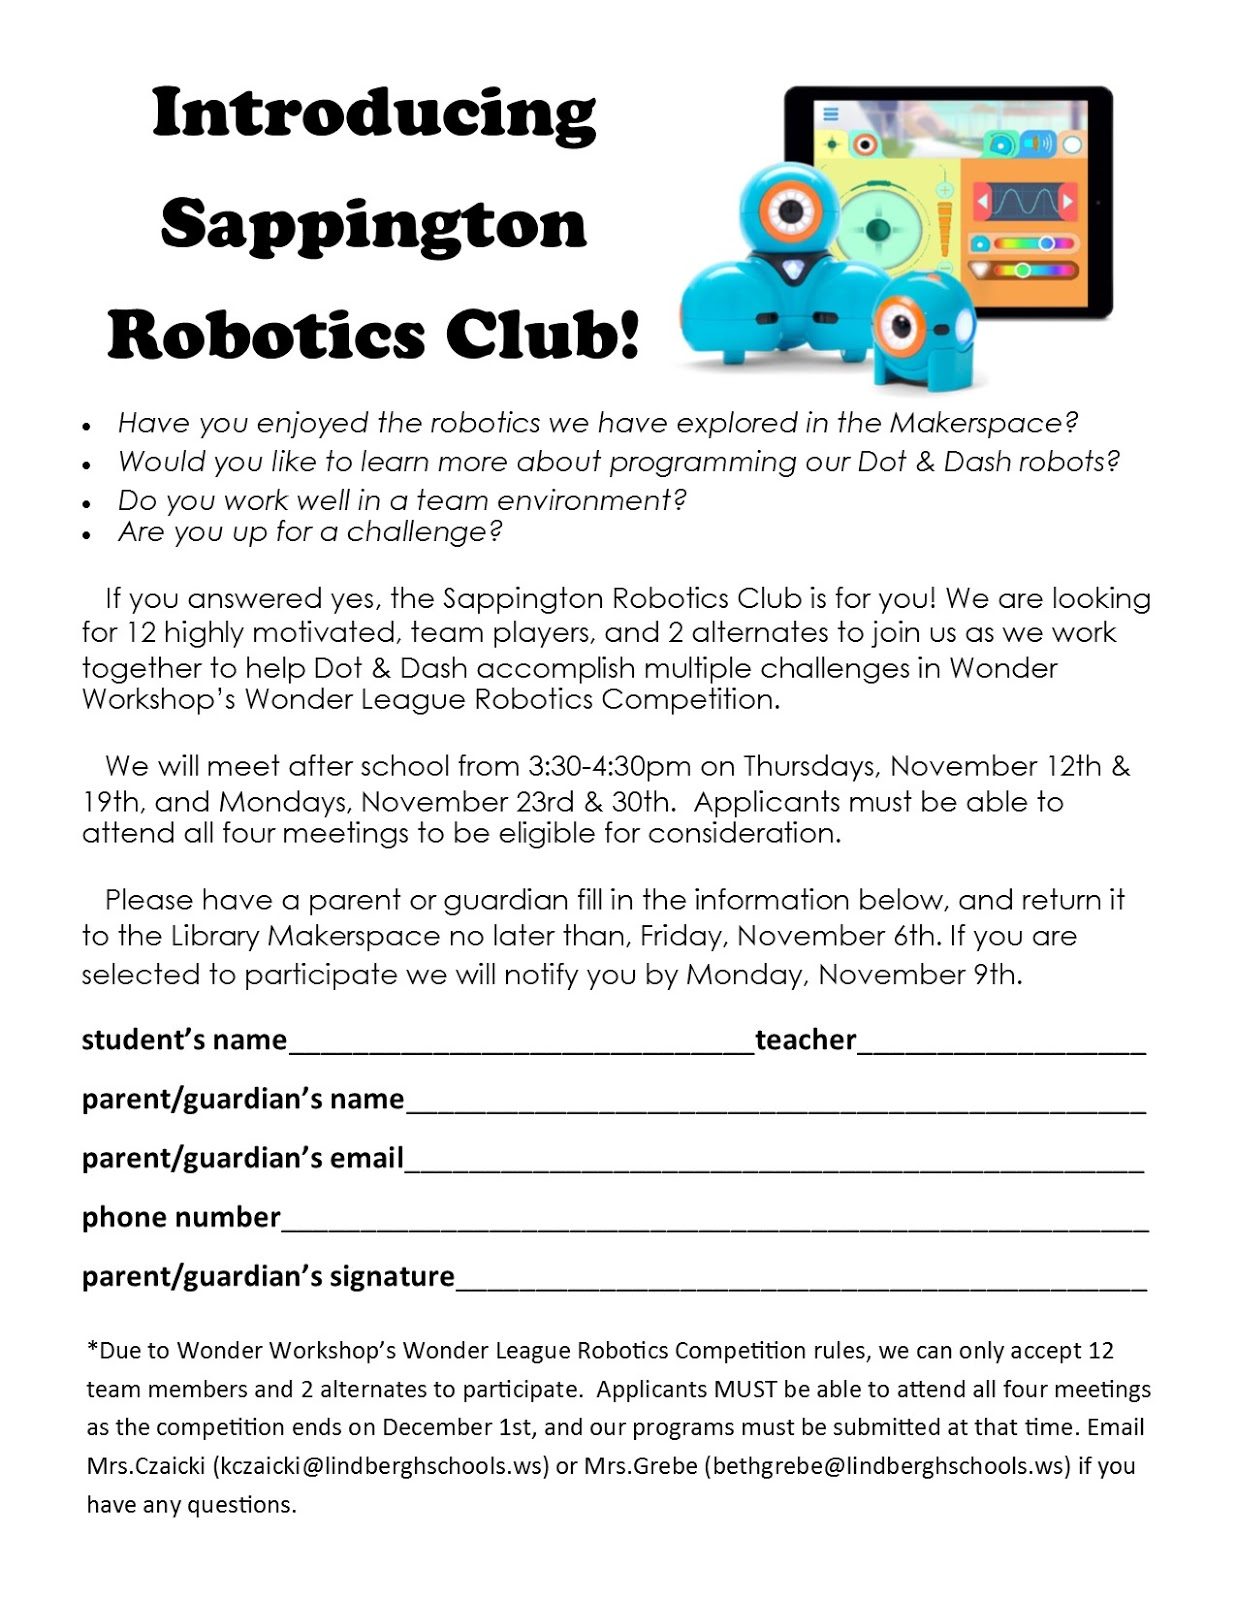 sappington library makerspace if you have any questions please do not hesitate to email mrs czaicki kczaicki lindberghschools ws or mrs grebe bethgrebe lindberghschools ws